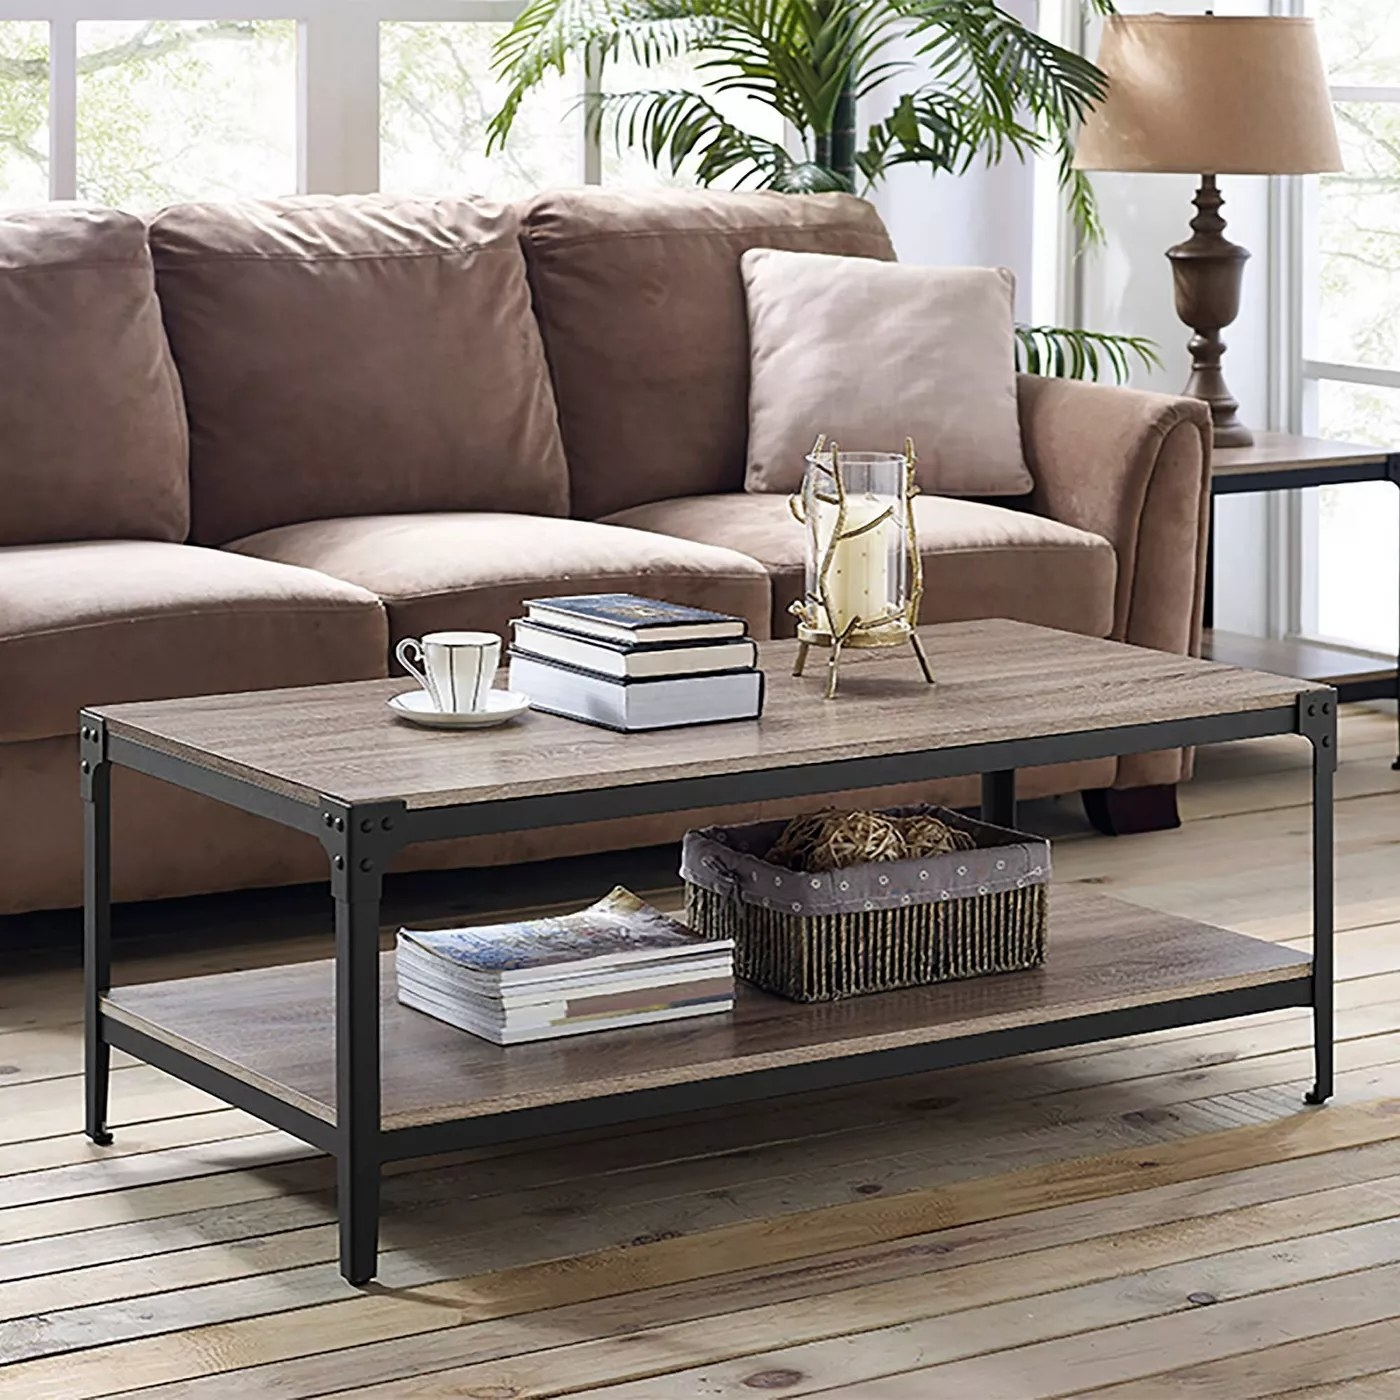 The driftwood and iron coffee table